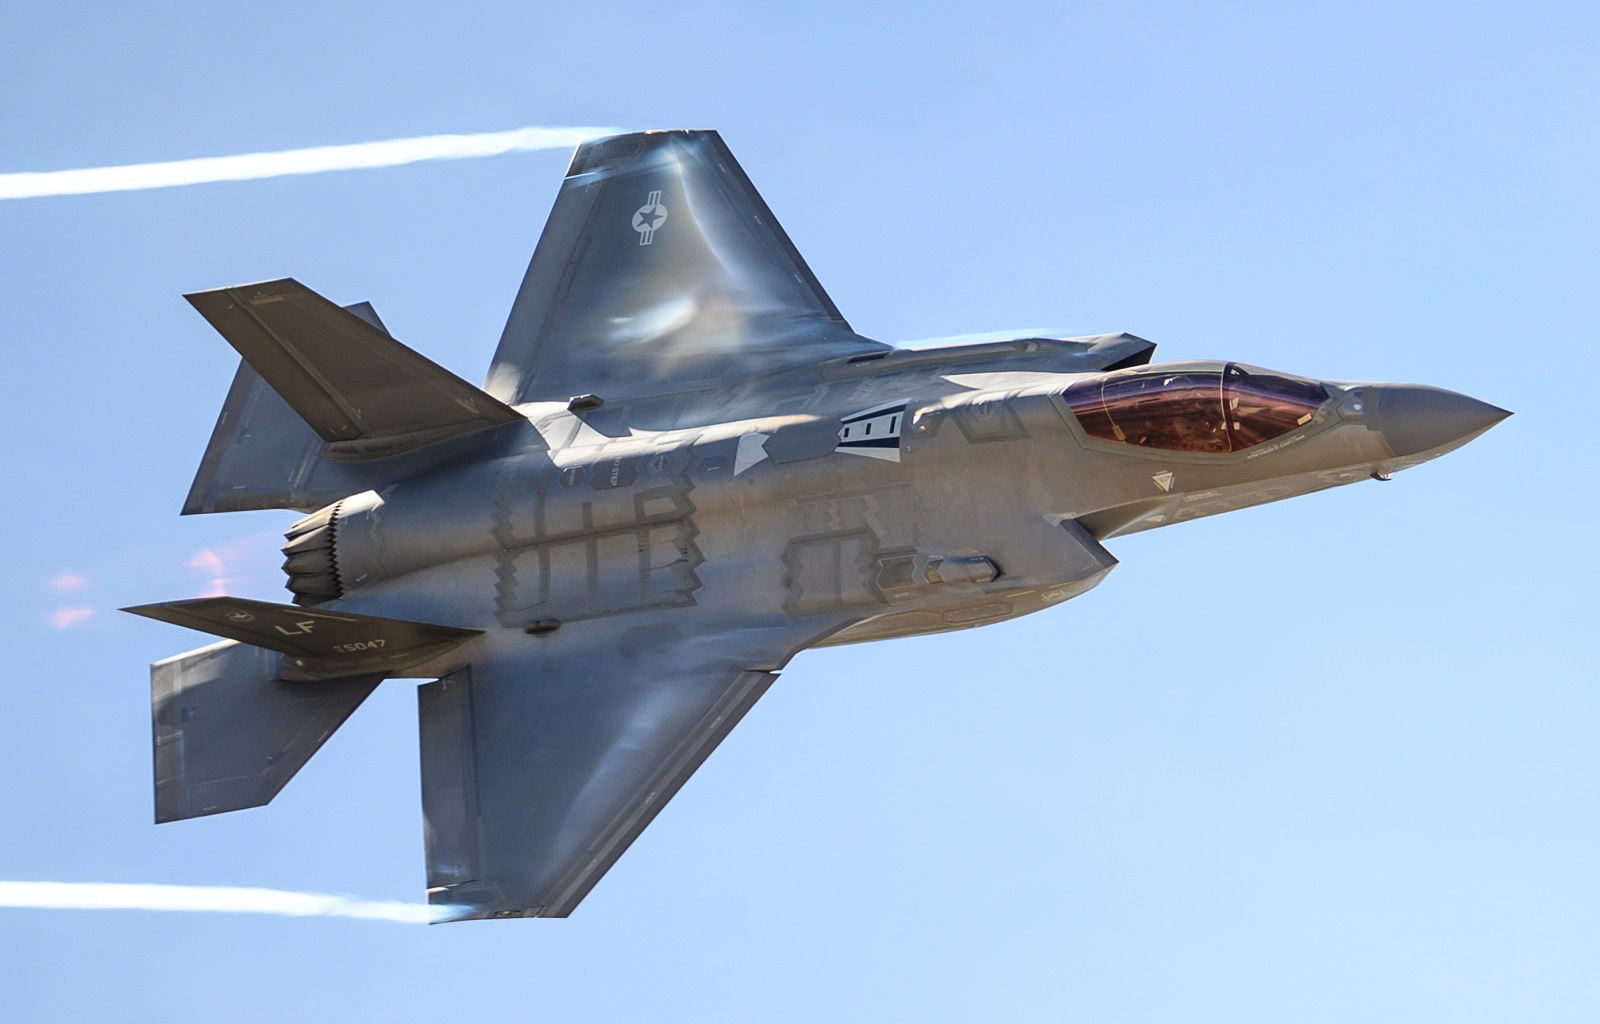 Report: Poland Will be Getting the F-35. Here's Why That's Big News.